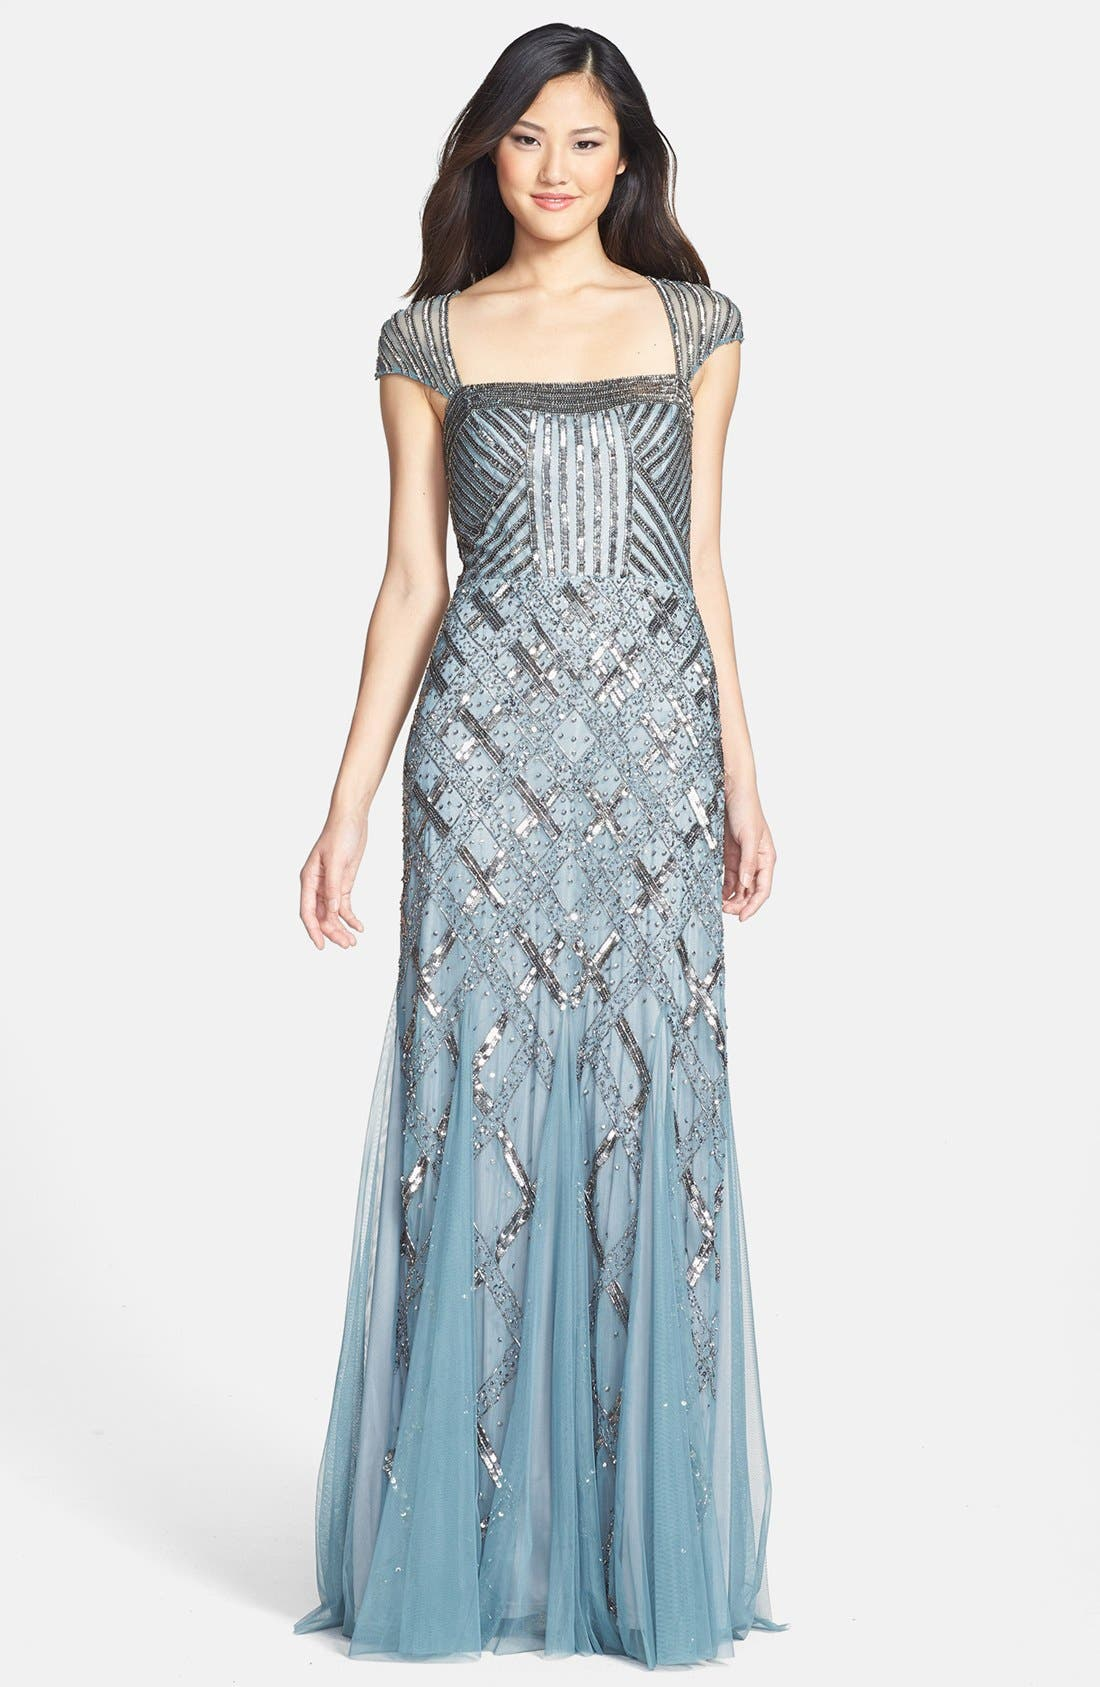 ADRIANNA PAPELL Embellished Mesh Mermaid Gown, Main, color, 030